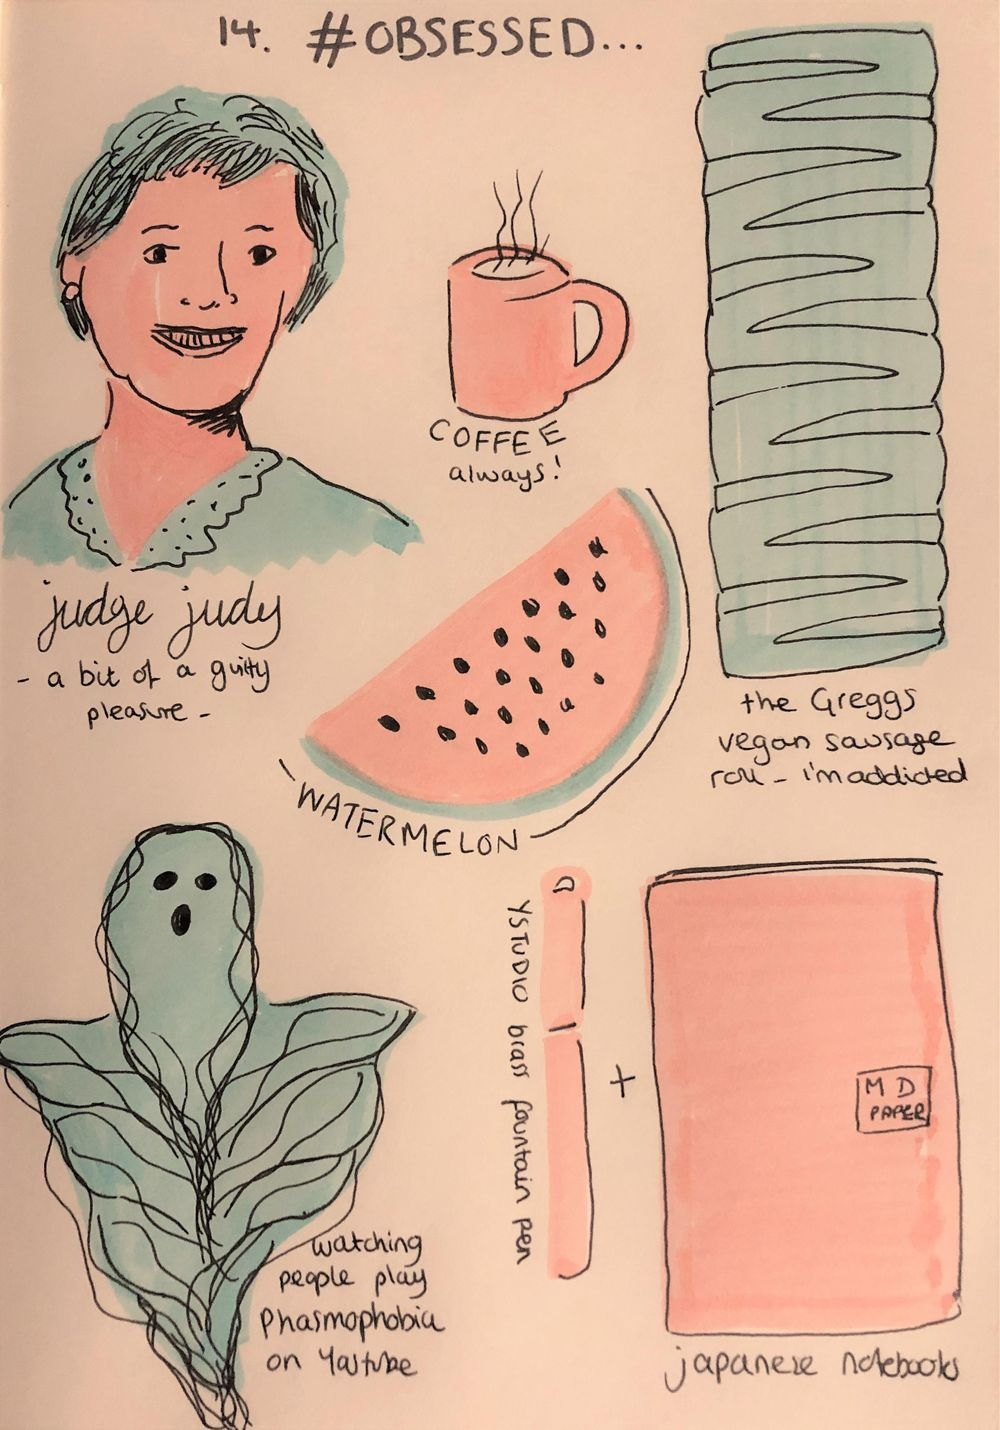 Daily Illustrated Journaling Prompts - image 1 - student project